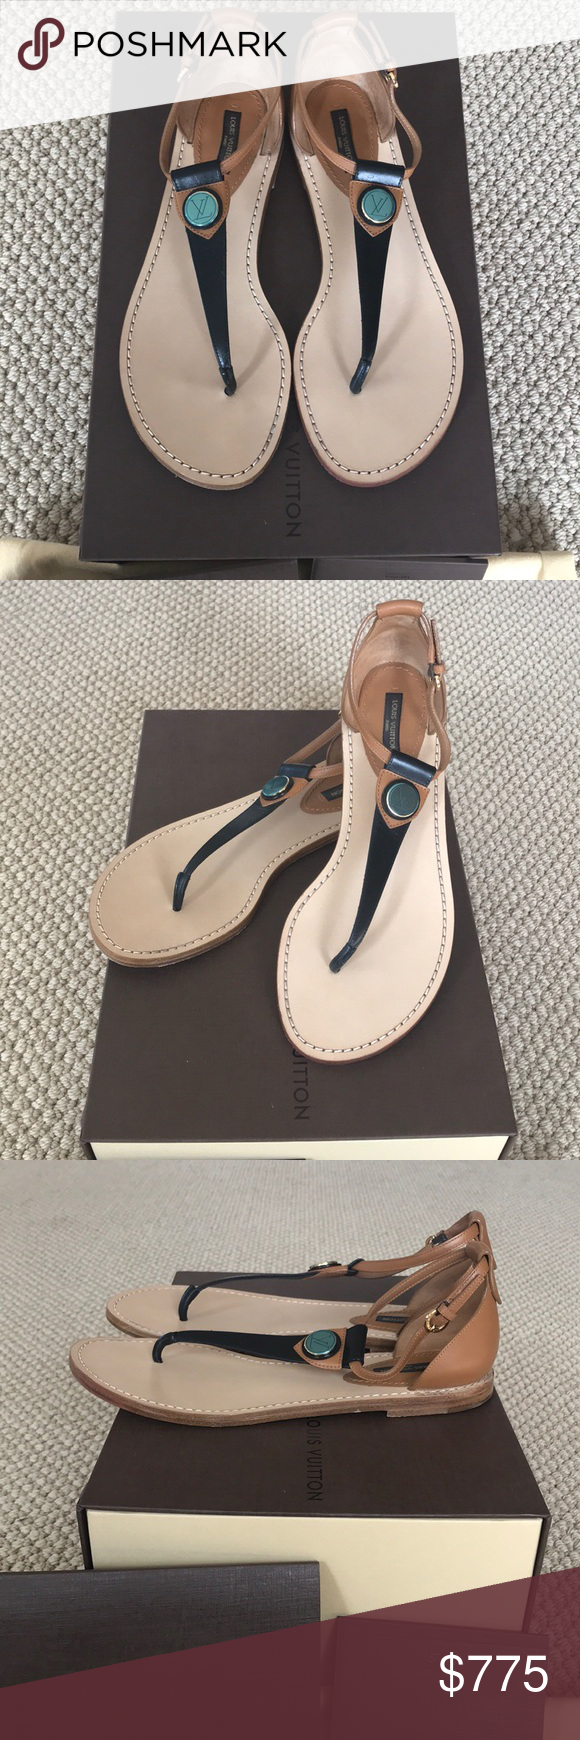 ace5db7f7b73 💯Authentic Louis Vuitton South Beach Sandal Beautiful sandal by Louis  Vuitton from Spring 2016. These are in mint condition....only worn a couple  times.